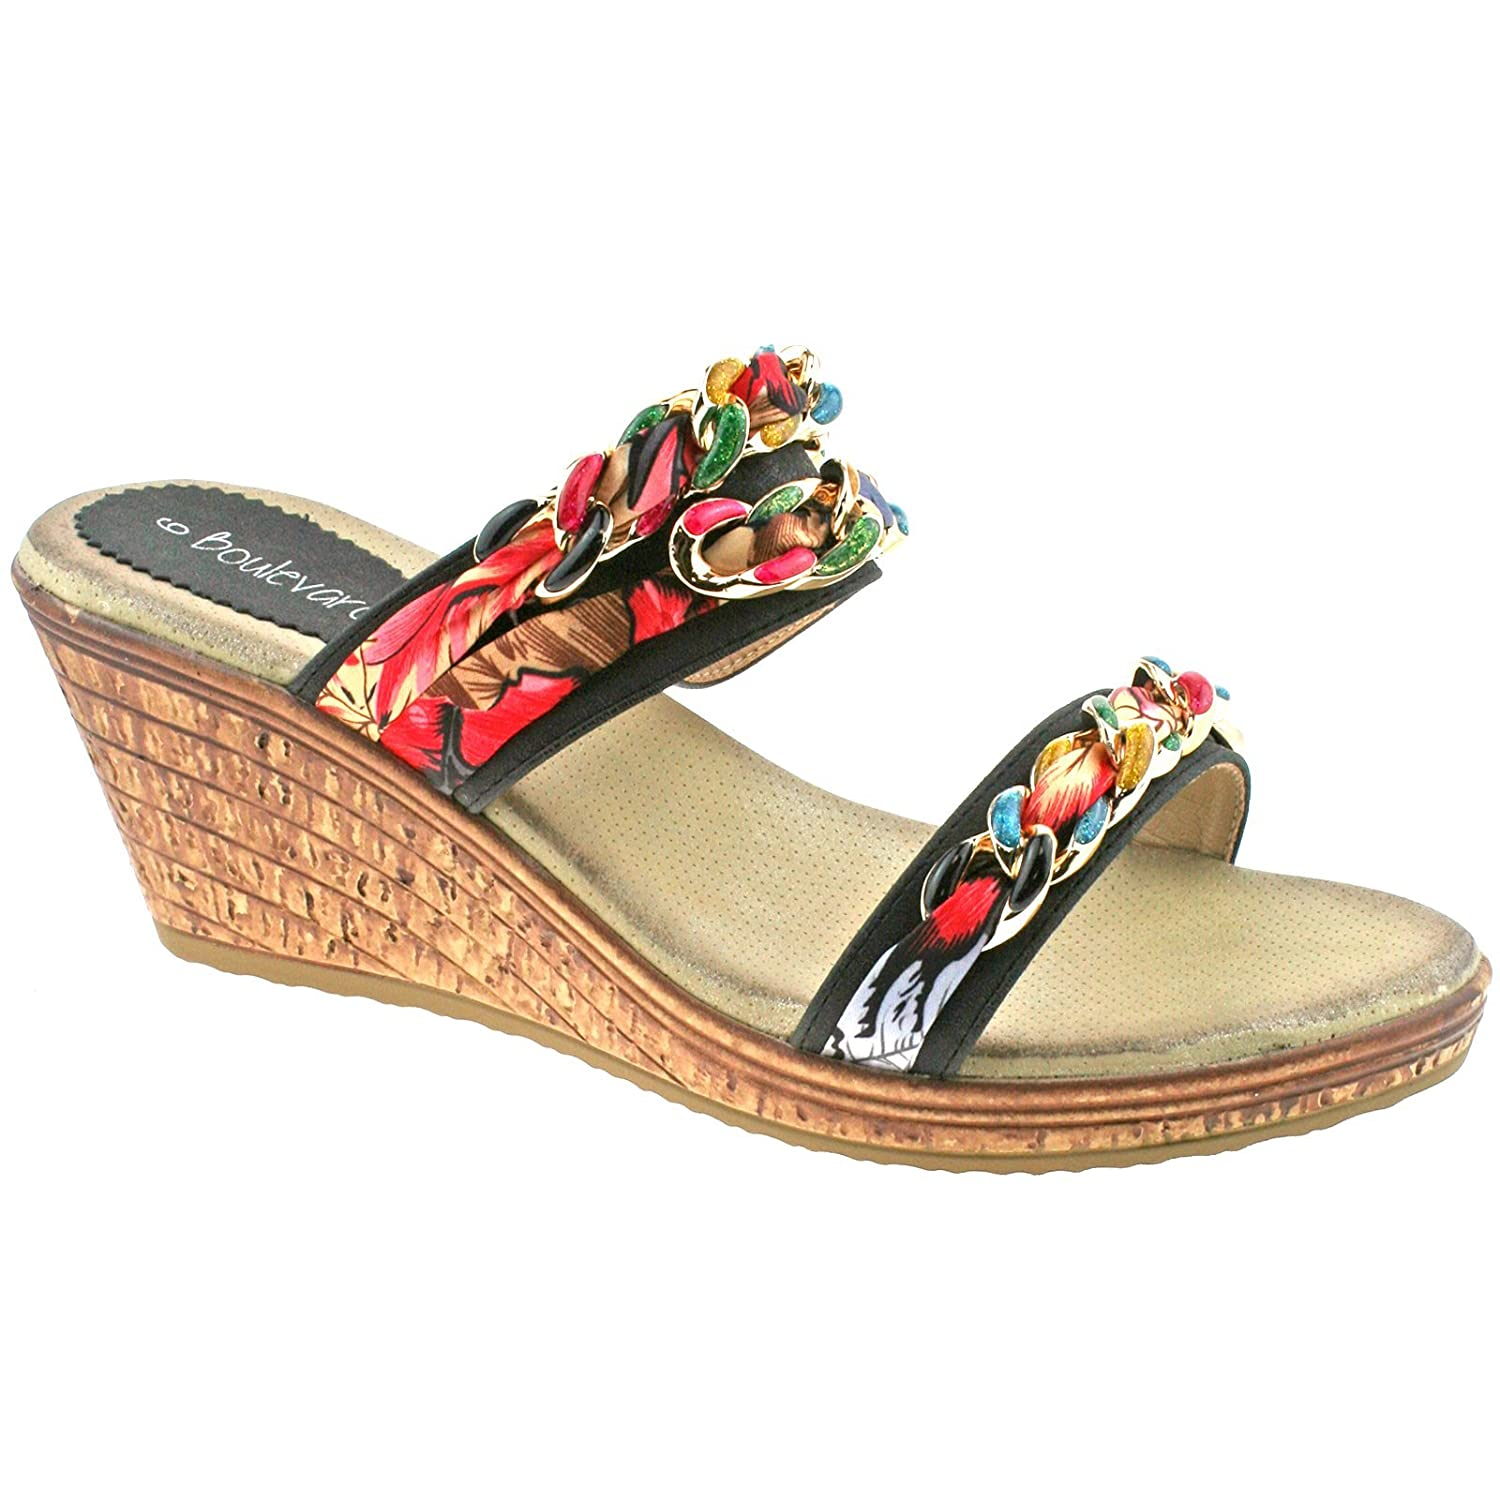 d2752e60532f04 Womens Twin Strap Mule Wedge Summer Sandals  Amazon.co.uk  Shoes   Bags